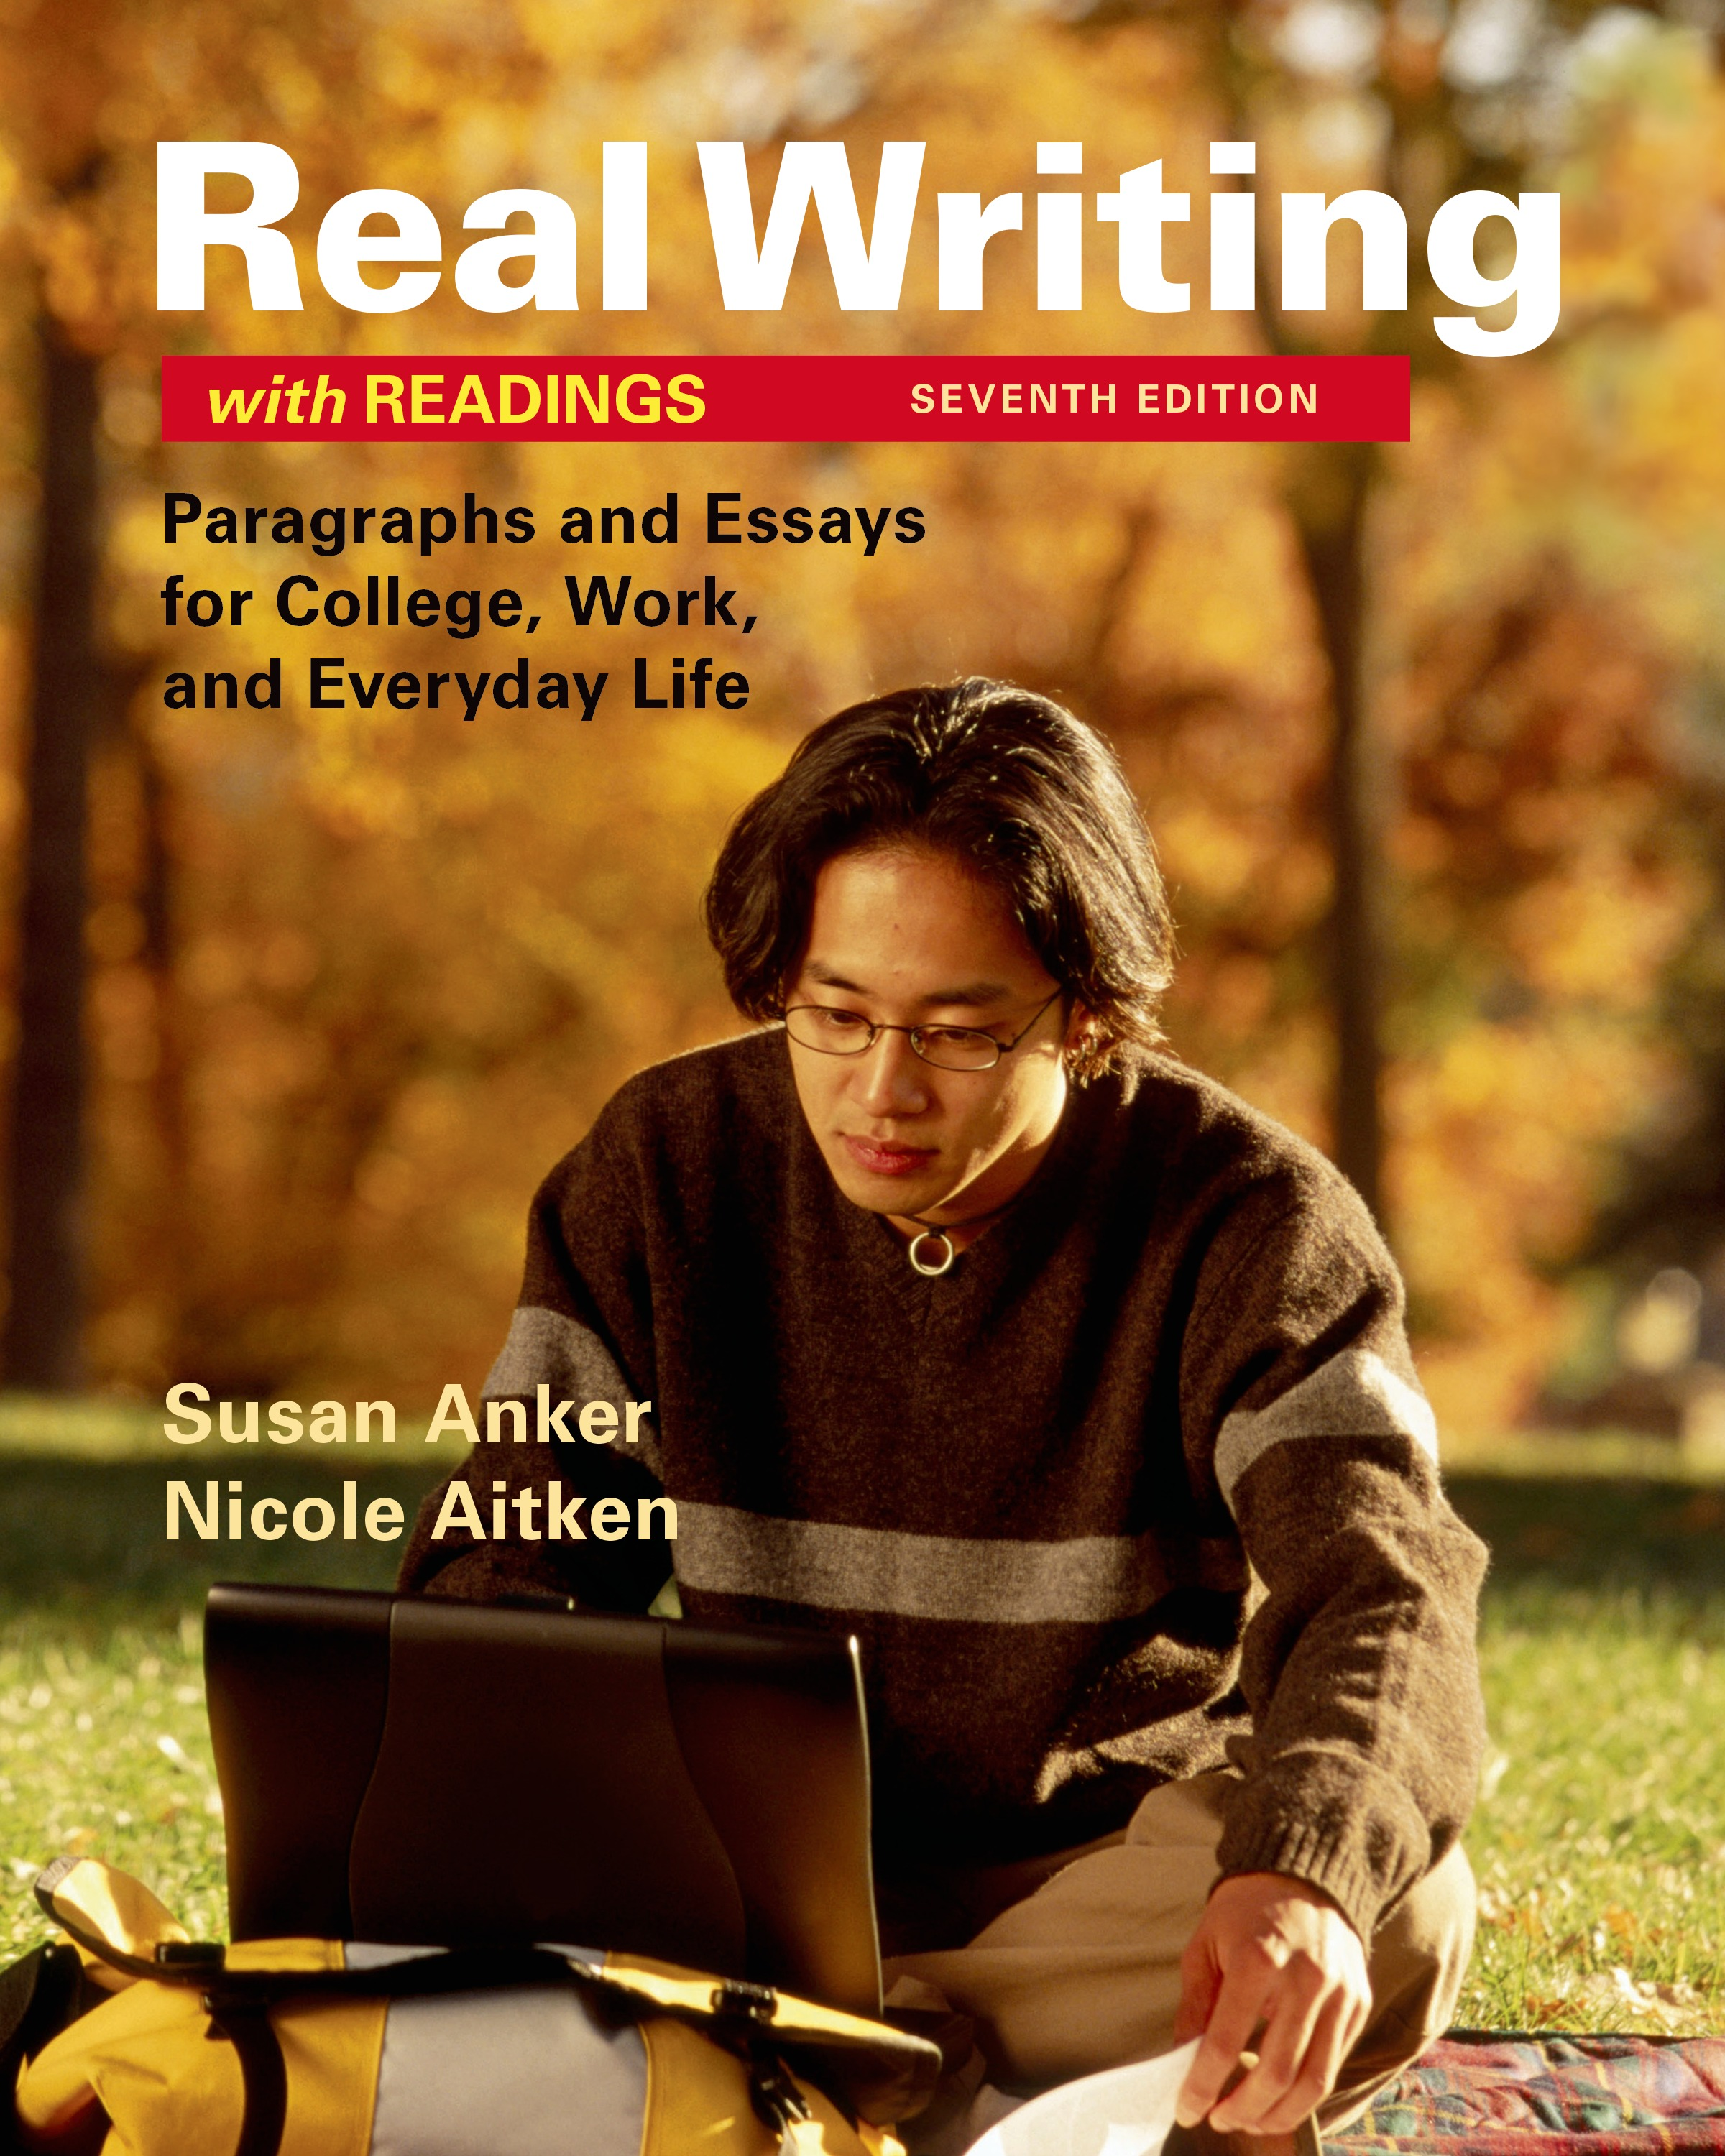 college essay everyday life paragraph reading real work writing Real writing: paragraphs and essays for college, work, and everyday life, sixth edition - kindle edition by susan anker download it once and read it on your.